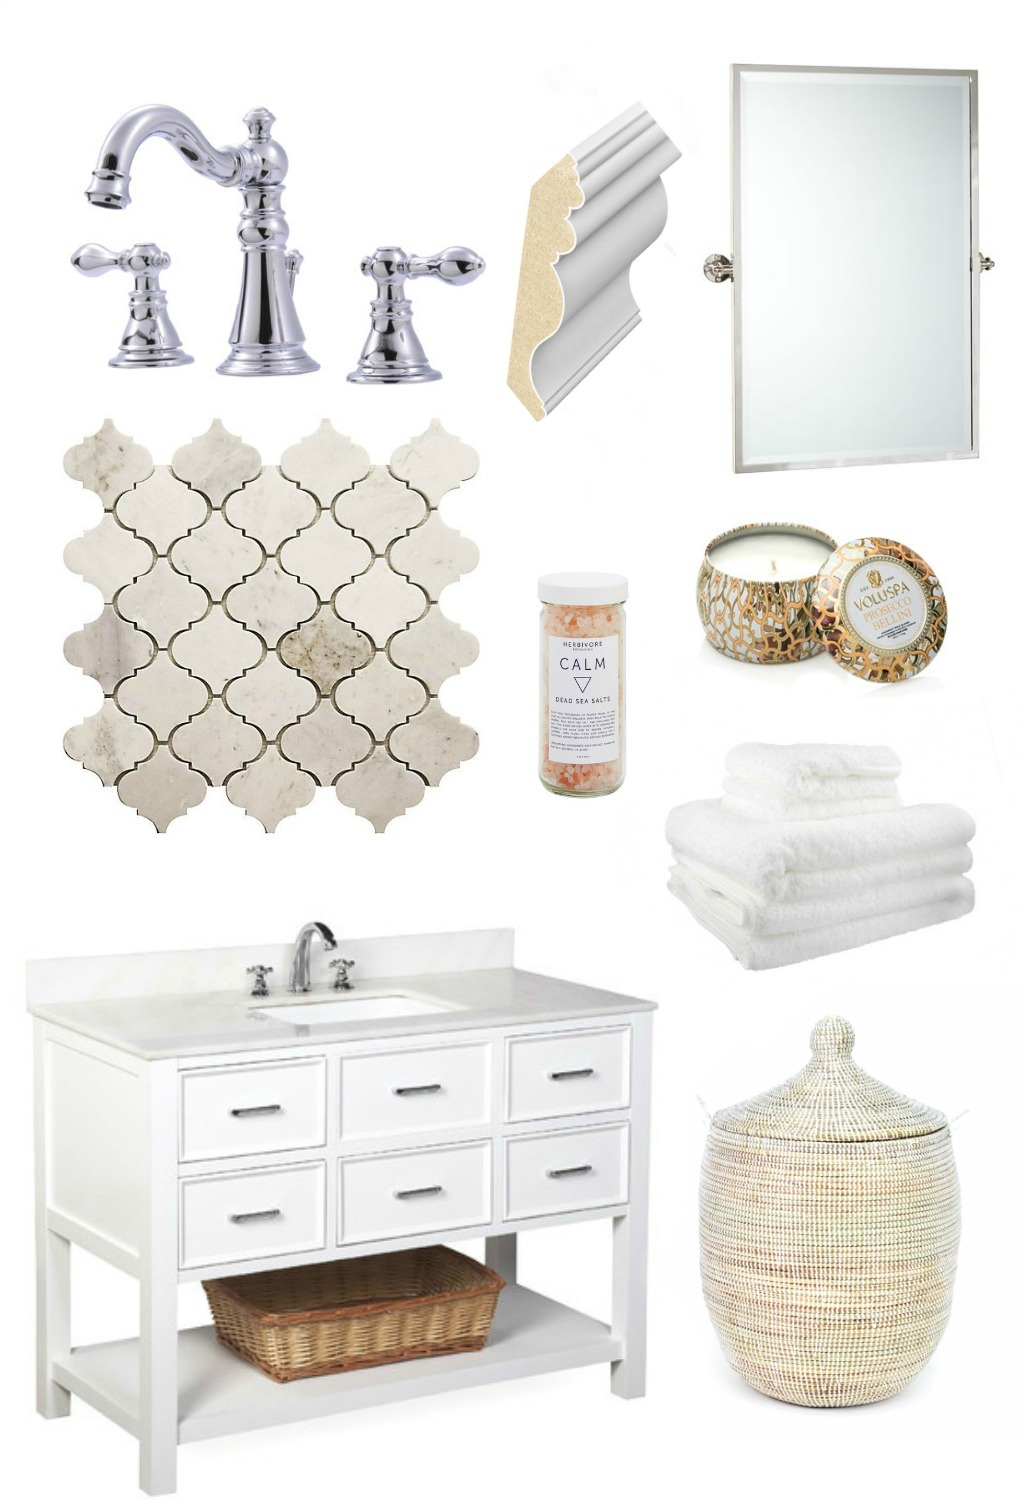 bathroom-reno-rose-city-style-guide-inspiration-canadian-lifestyle-blog-home-decor-1